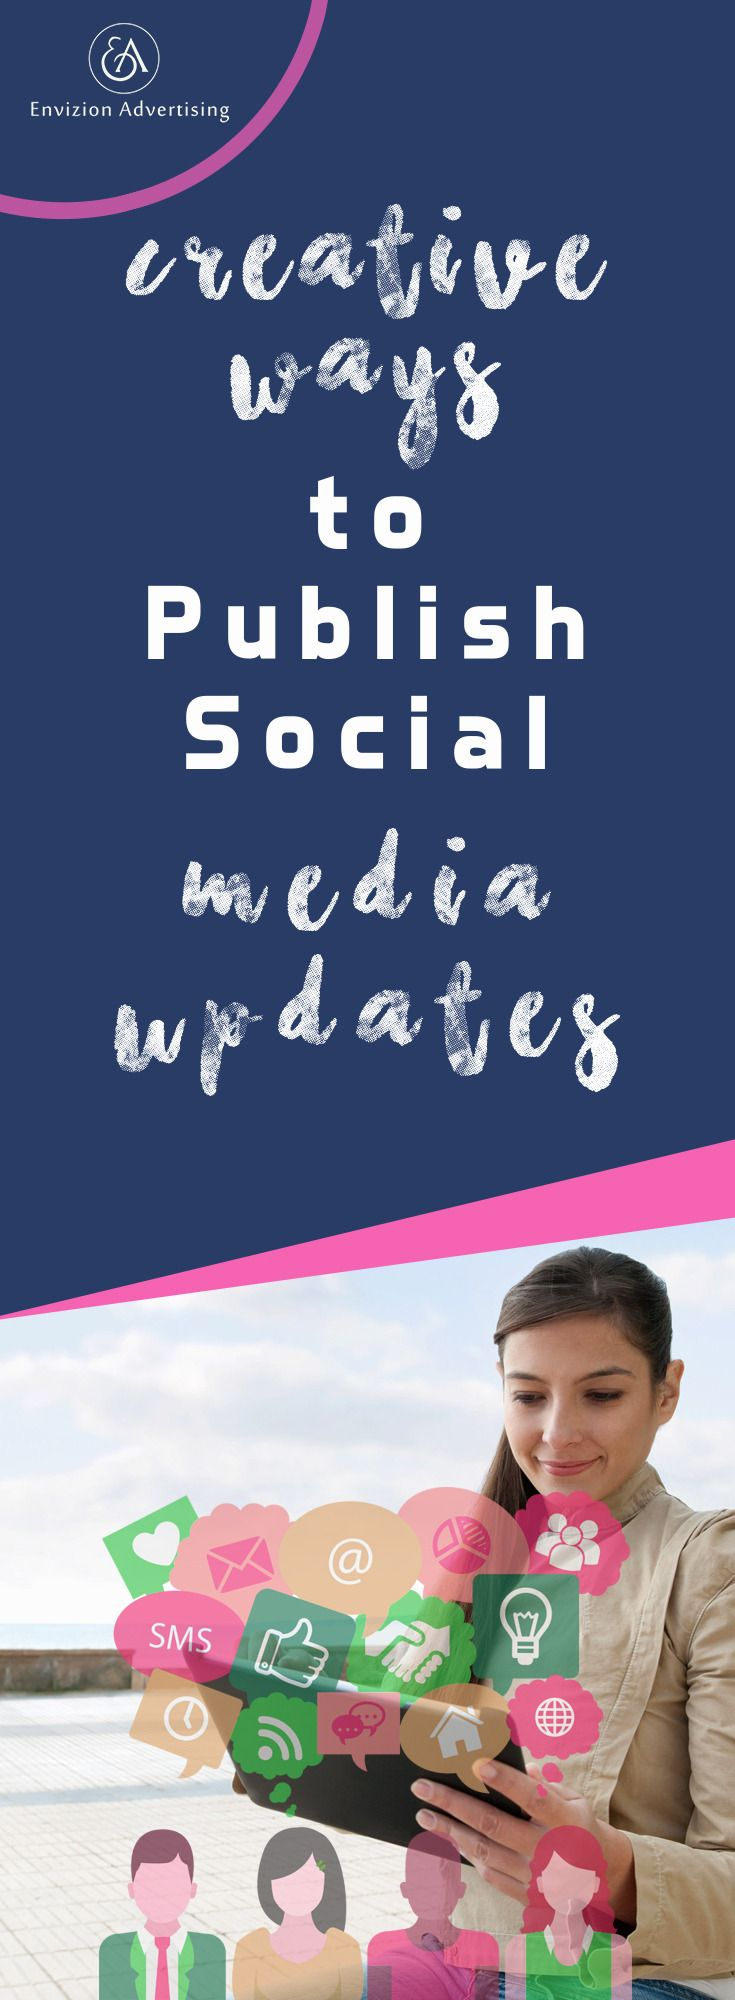 Learn some great and creative ways to publish social media updates: http://www.envizionadvertising.com/social-media/creative-ways-to-publish-social-media-updates/